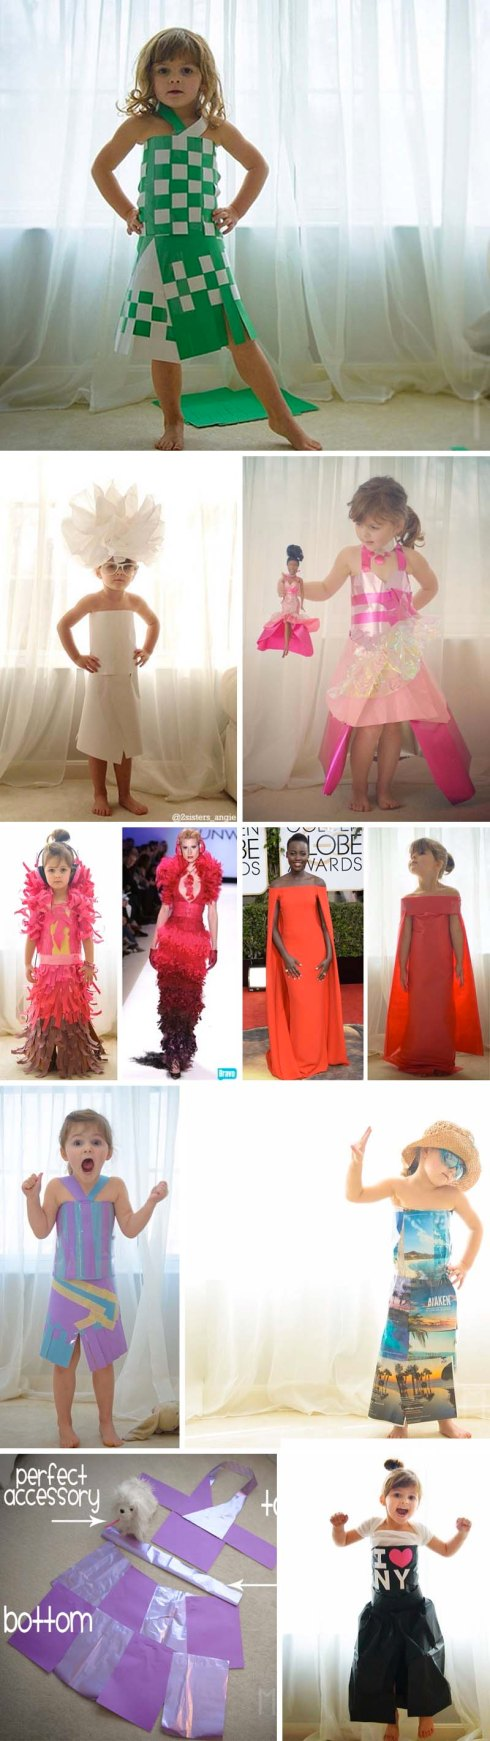 Paper dresses made by a 4-year-old and her mother, dresses made from paper, Fashion by Mayhem, 2sisters_angie, crafts with kids, fun